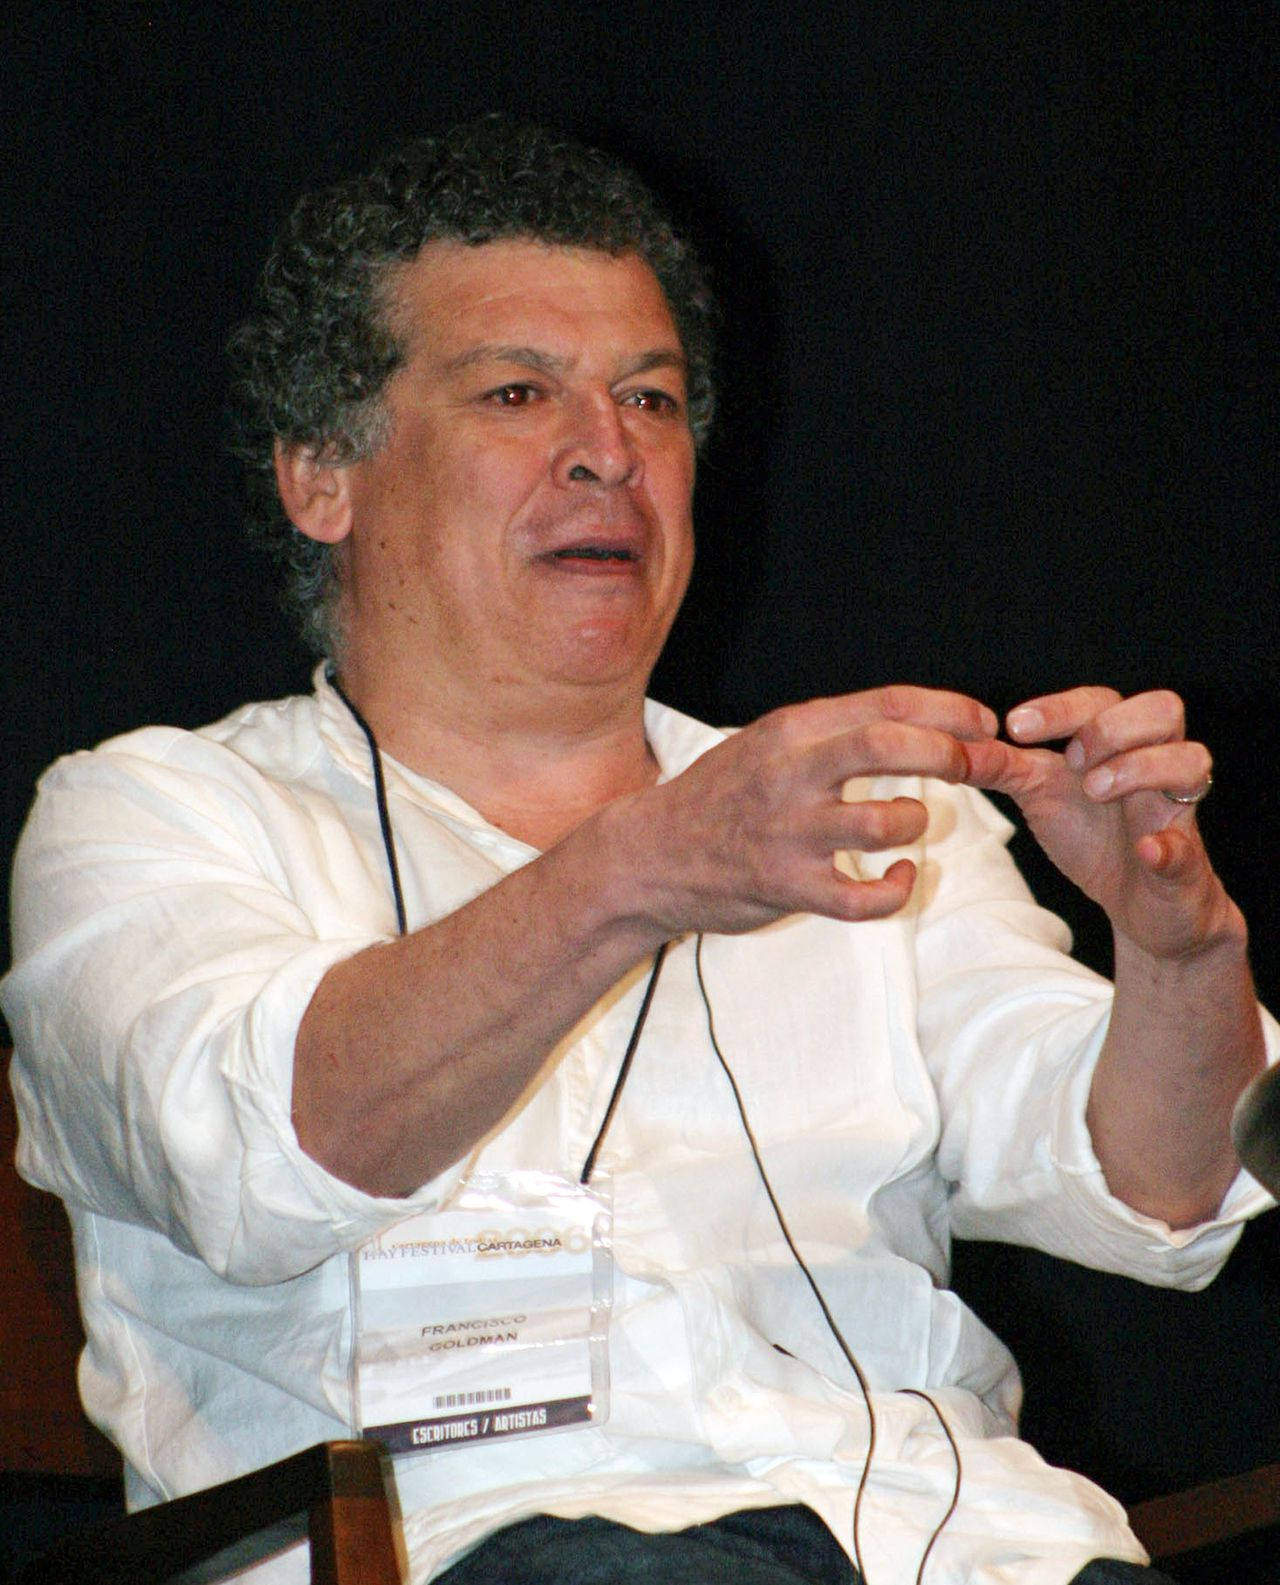 Writer Francisco Goldman talks to audience during the Hay Literary Festival in the Caribbean city of Cartagena, in Colombia January 28, 2006. REUTERS/Fredy Builes